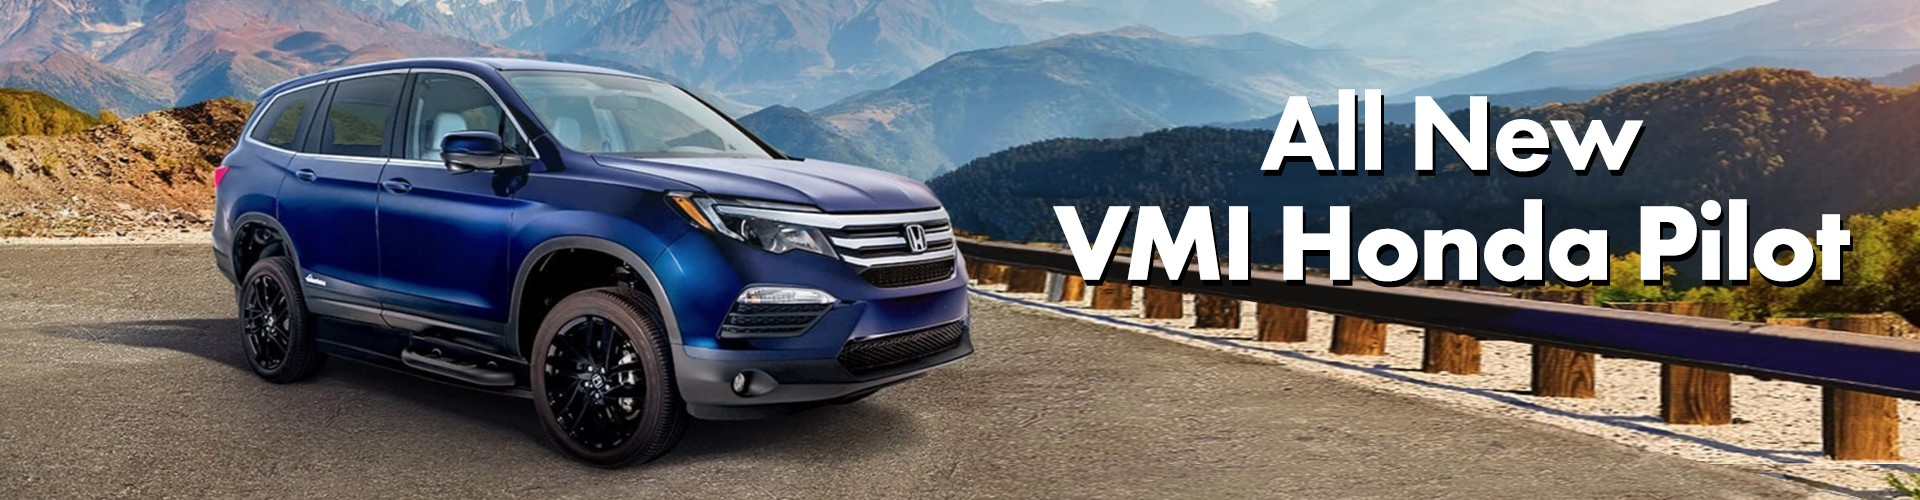 All New VMI Honda Pilot - Available Now Texas & SW Louisiana